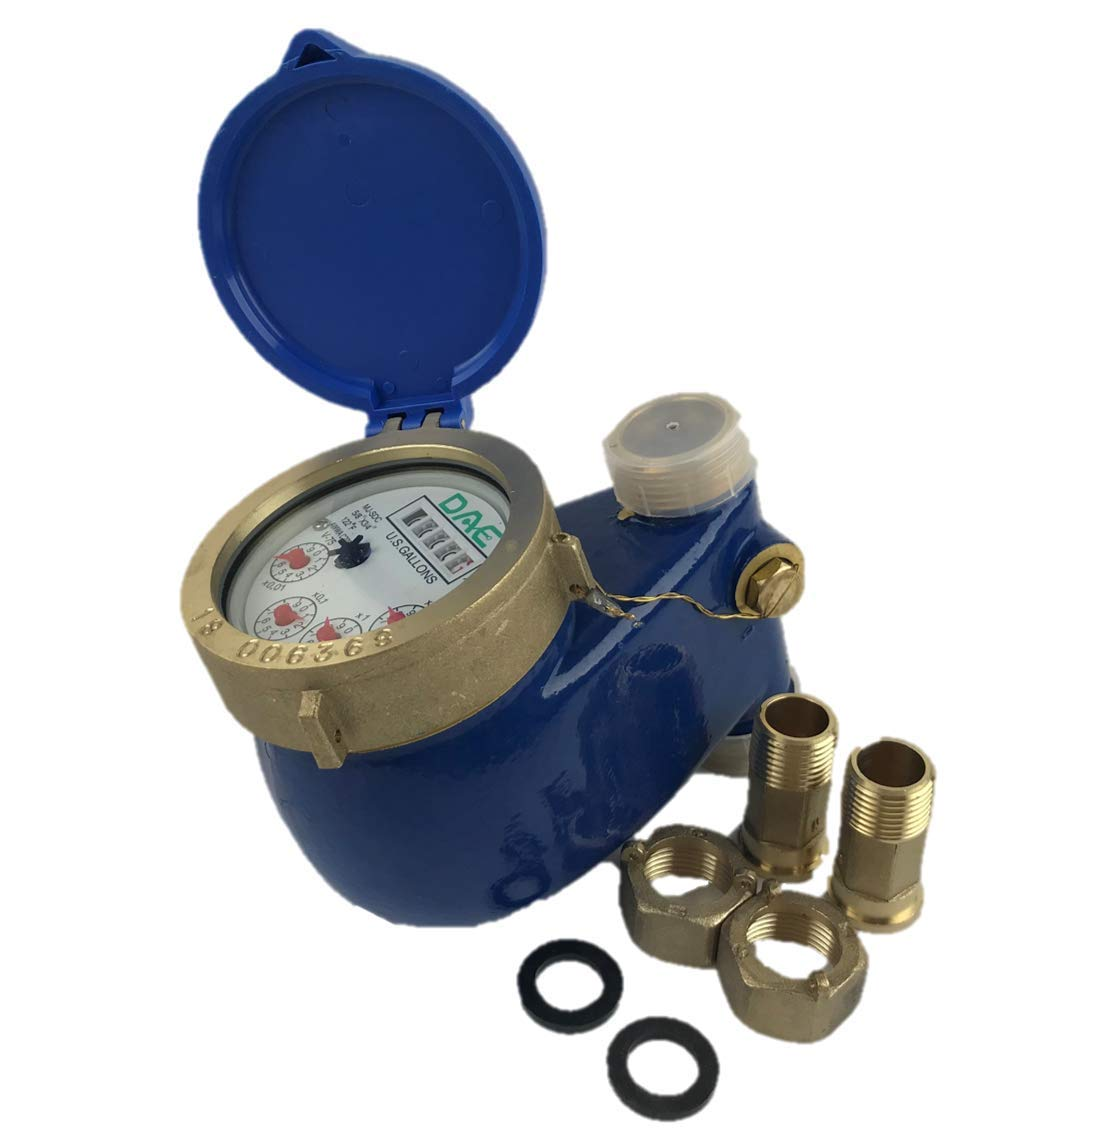 "DAE V-75 Vertical Water Meter, 3/4"" NPT Couplings, Measuring in Gallons"